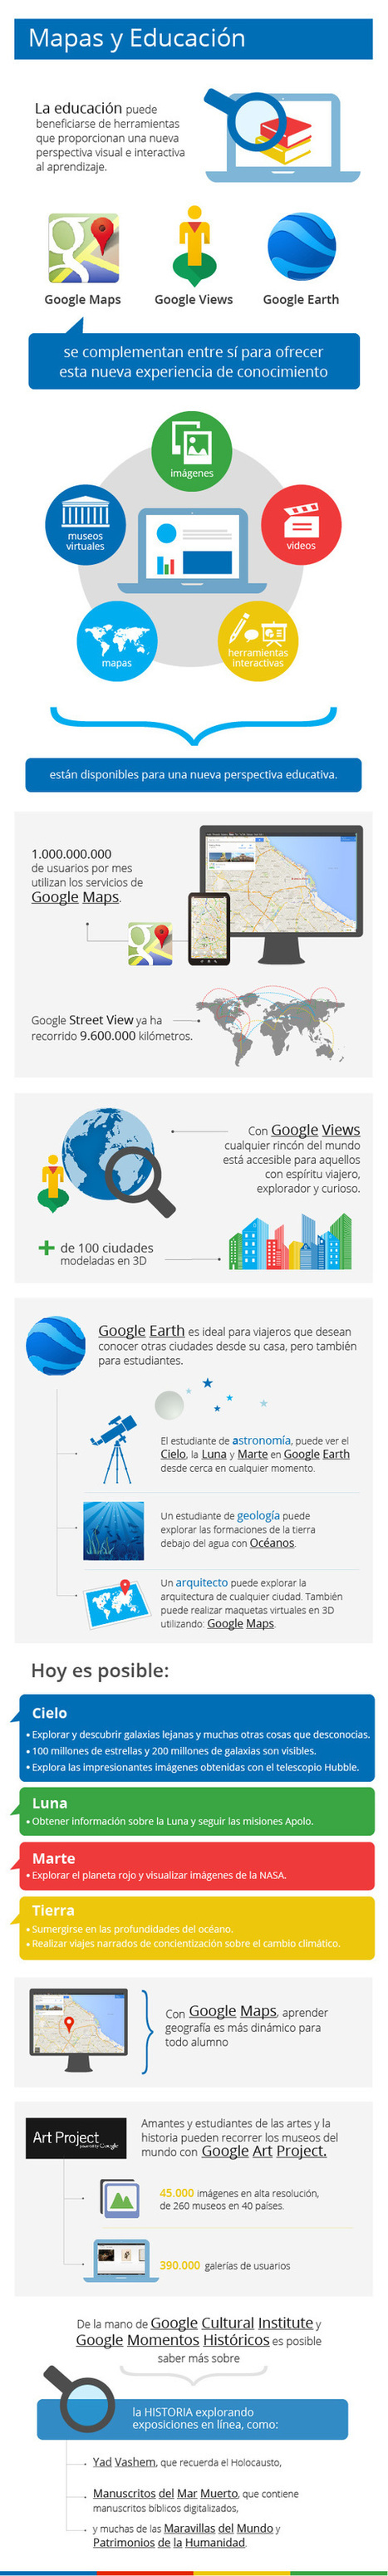 ¿Cómo está transformando Internet (y Google) el sistema educativo? | social learning | Scoop.it